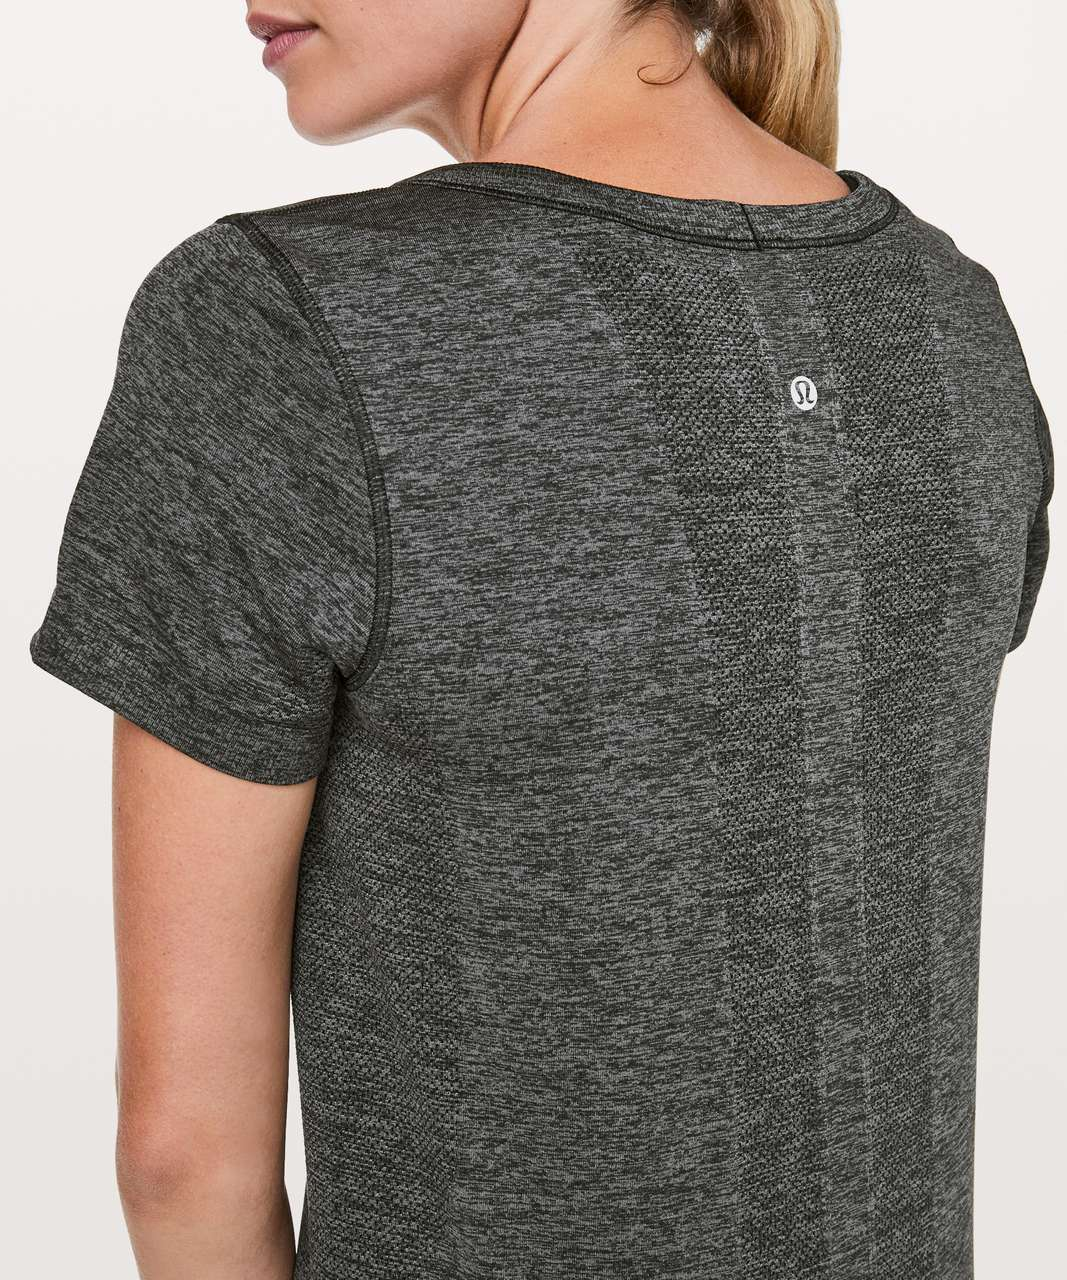 Lululemon Swiftly Tech Short Sleeve (Breeze) *Relaxed Fit - Black / Anchor